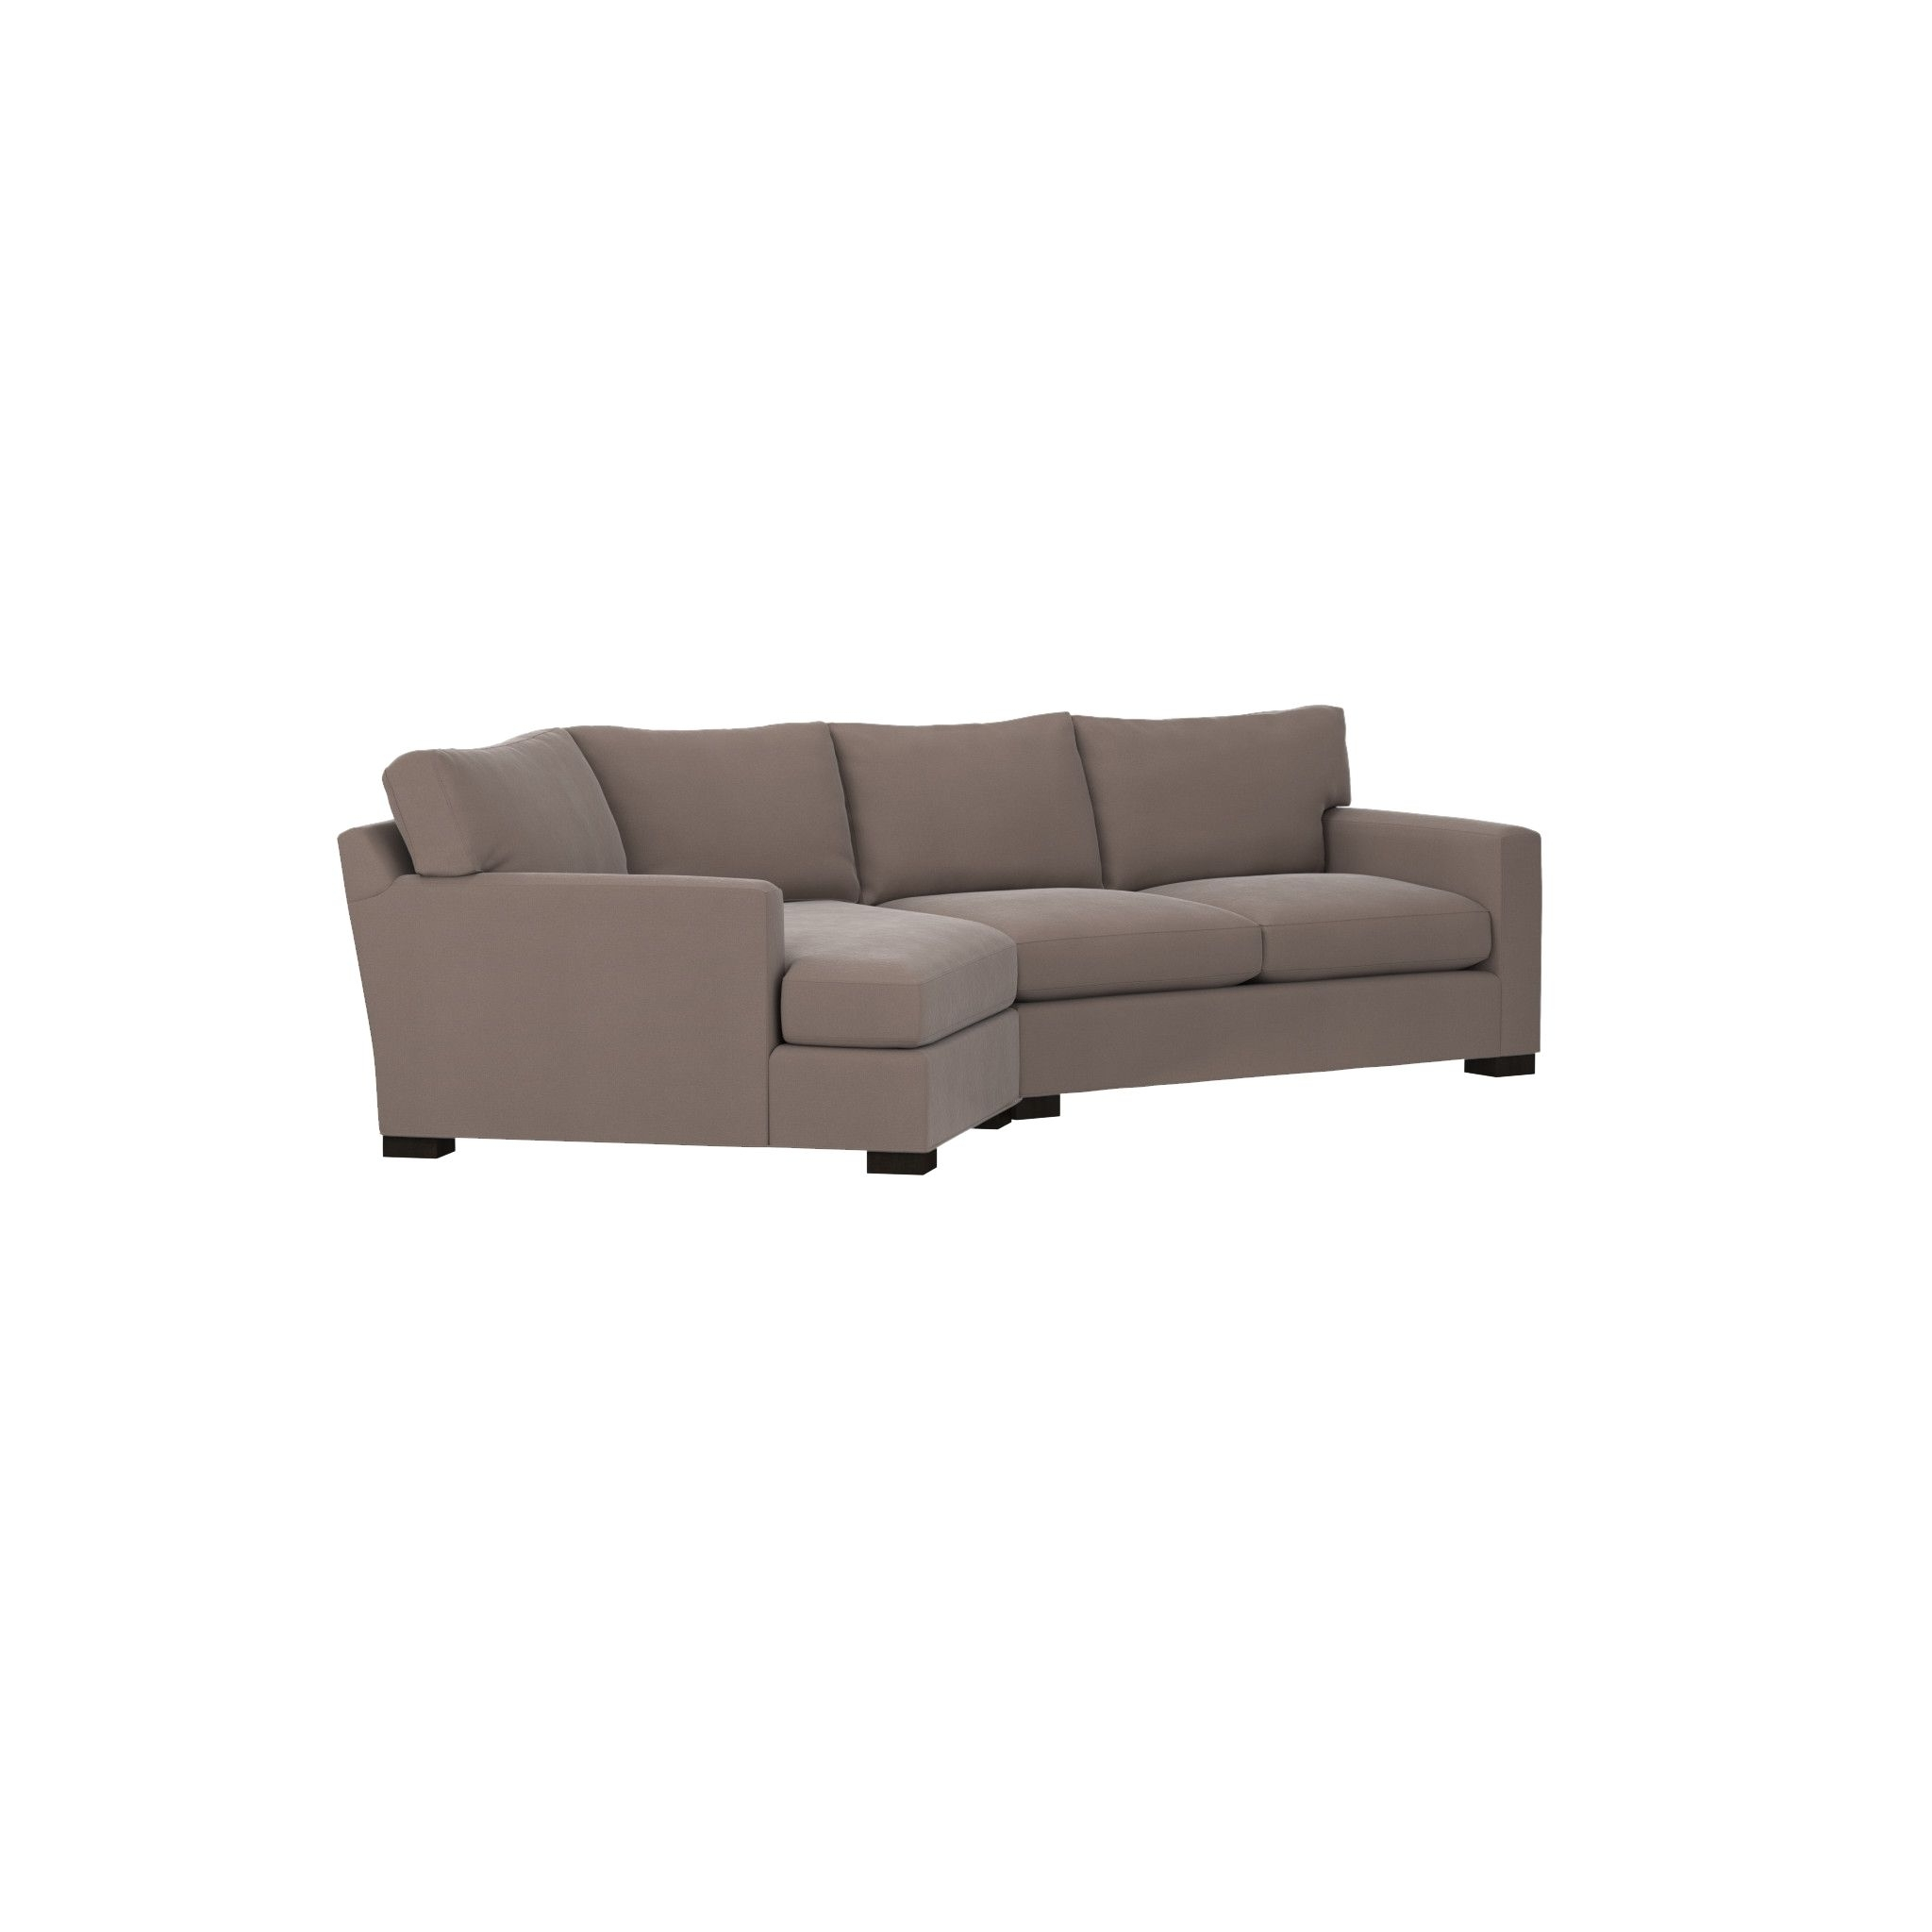 Most Up To Date Angled Chaise Sofas Regarding Axis Ii 2 Piece Right Arm Angled Chaise Sectional Sofa Crate And (View 14 of 20)